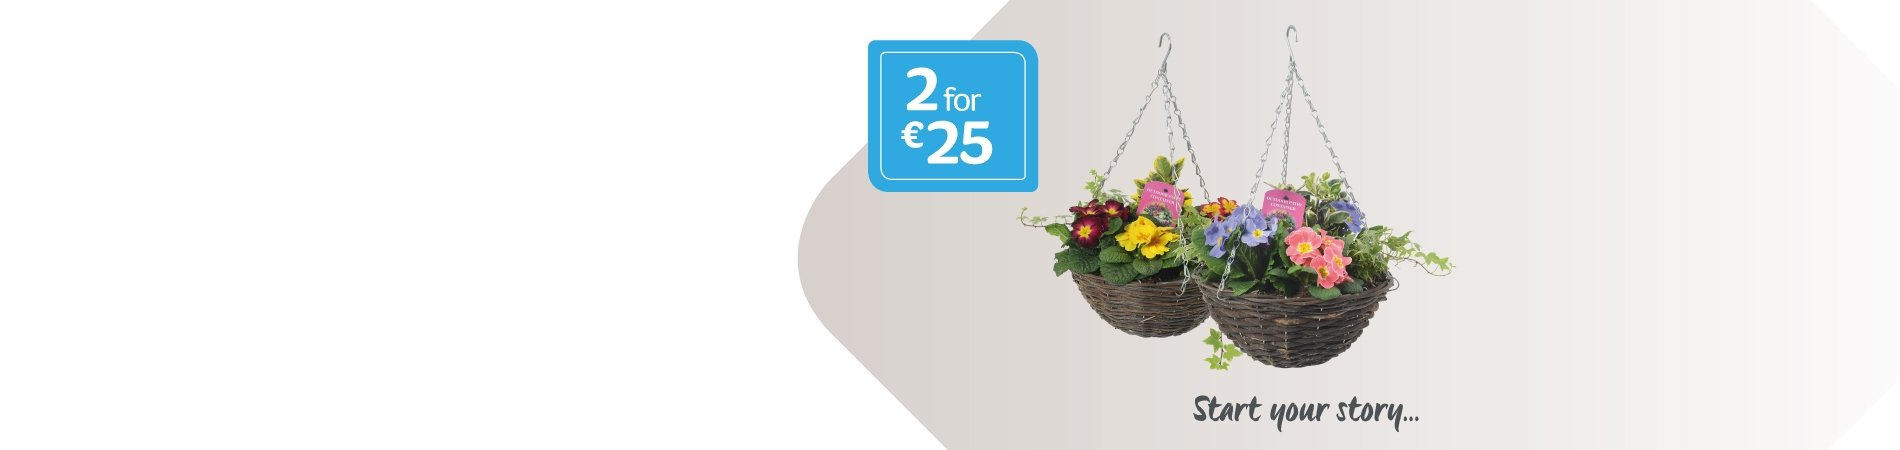 Hanging Baskets 2 for €25